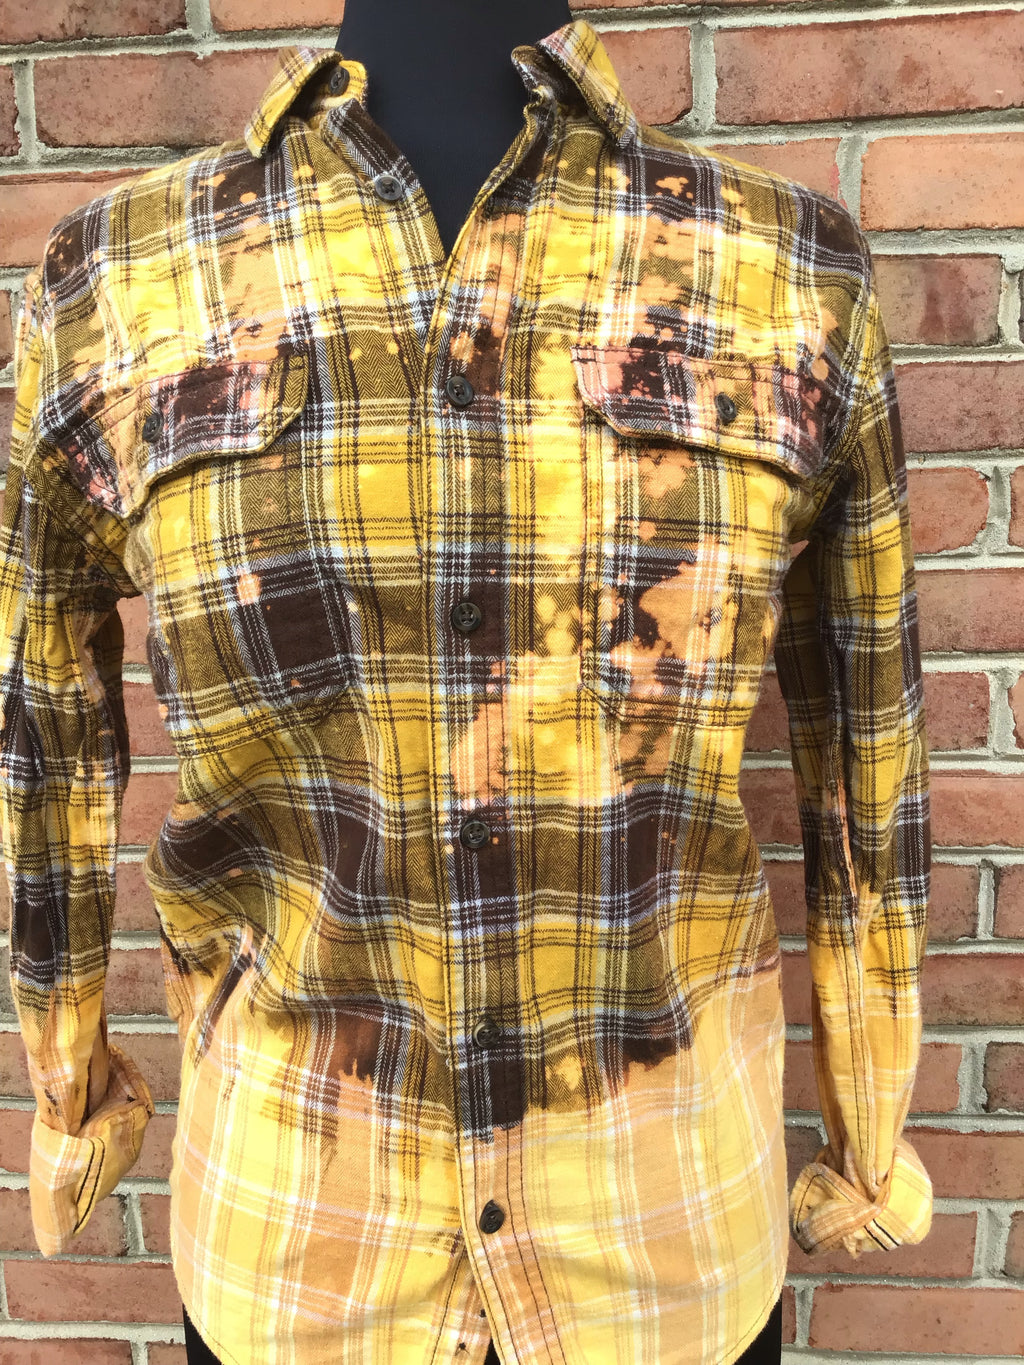 #417 One of a Kind Flannel Tops (Mustard & Brown Ombre)